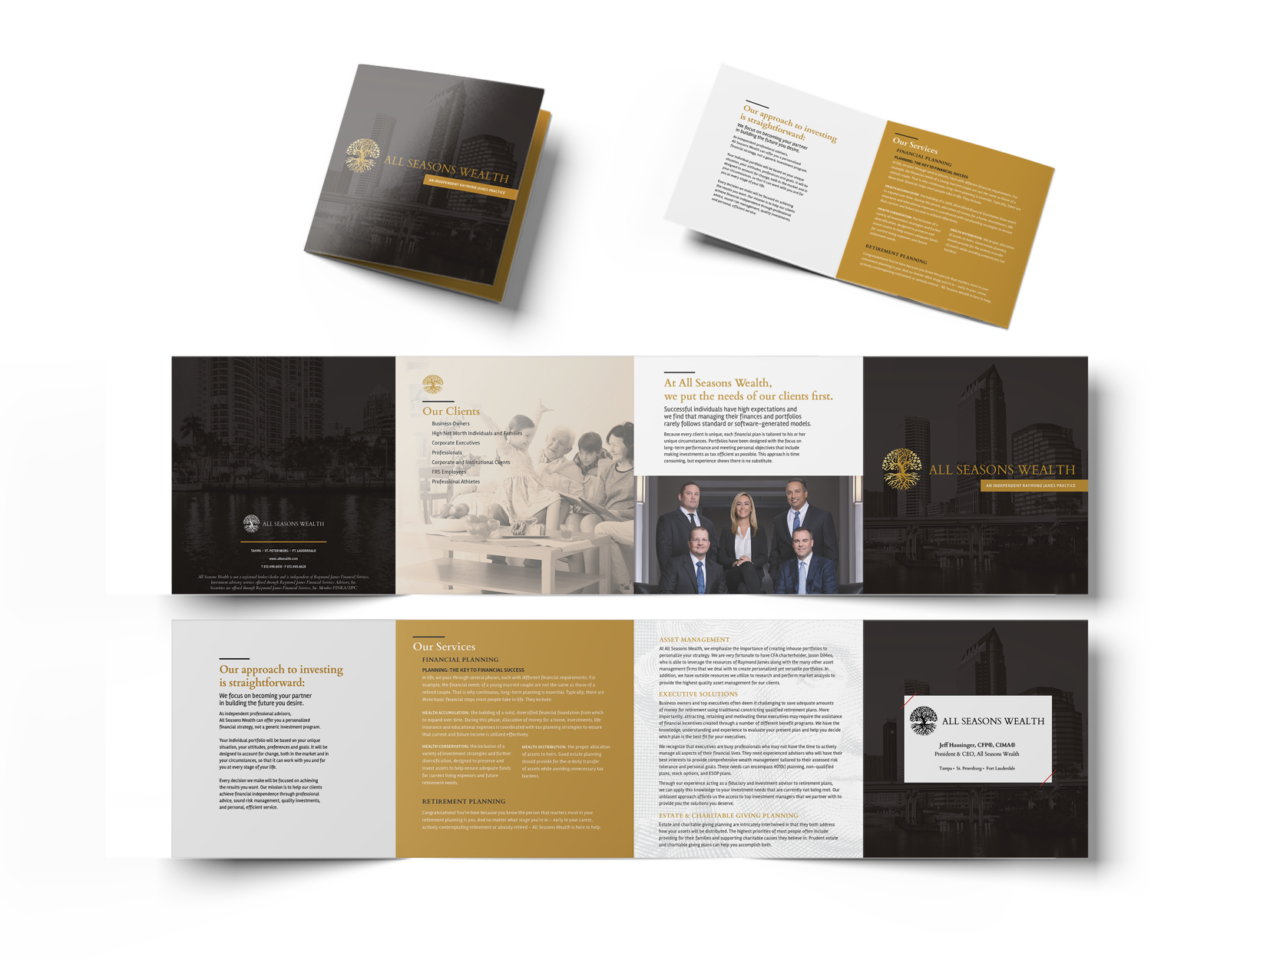 Pamphlet design with business information from All Seasons Wealth.